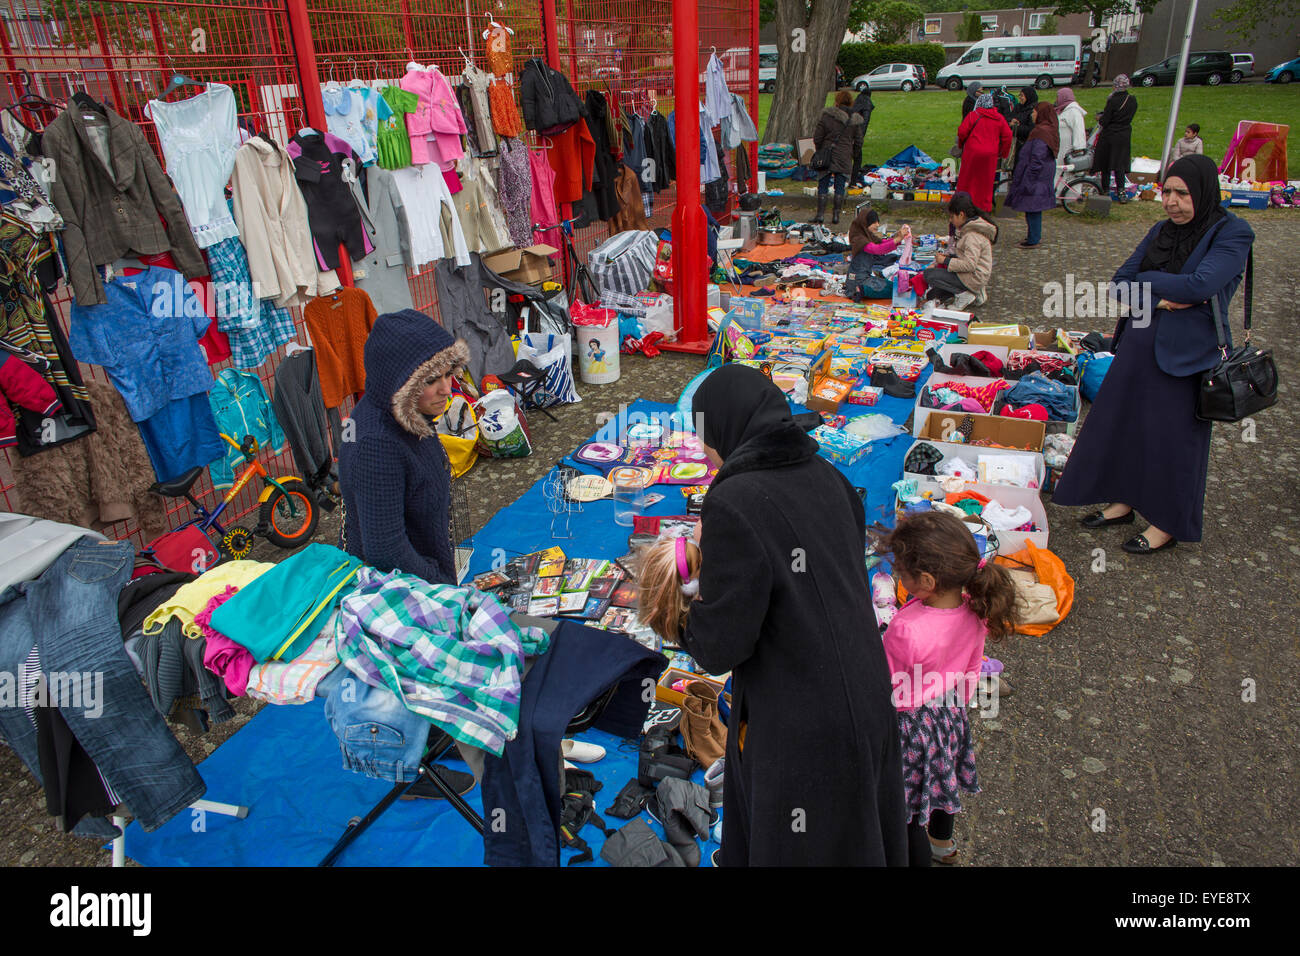 second hand market in the Netherlands - Stock Image